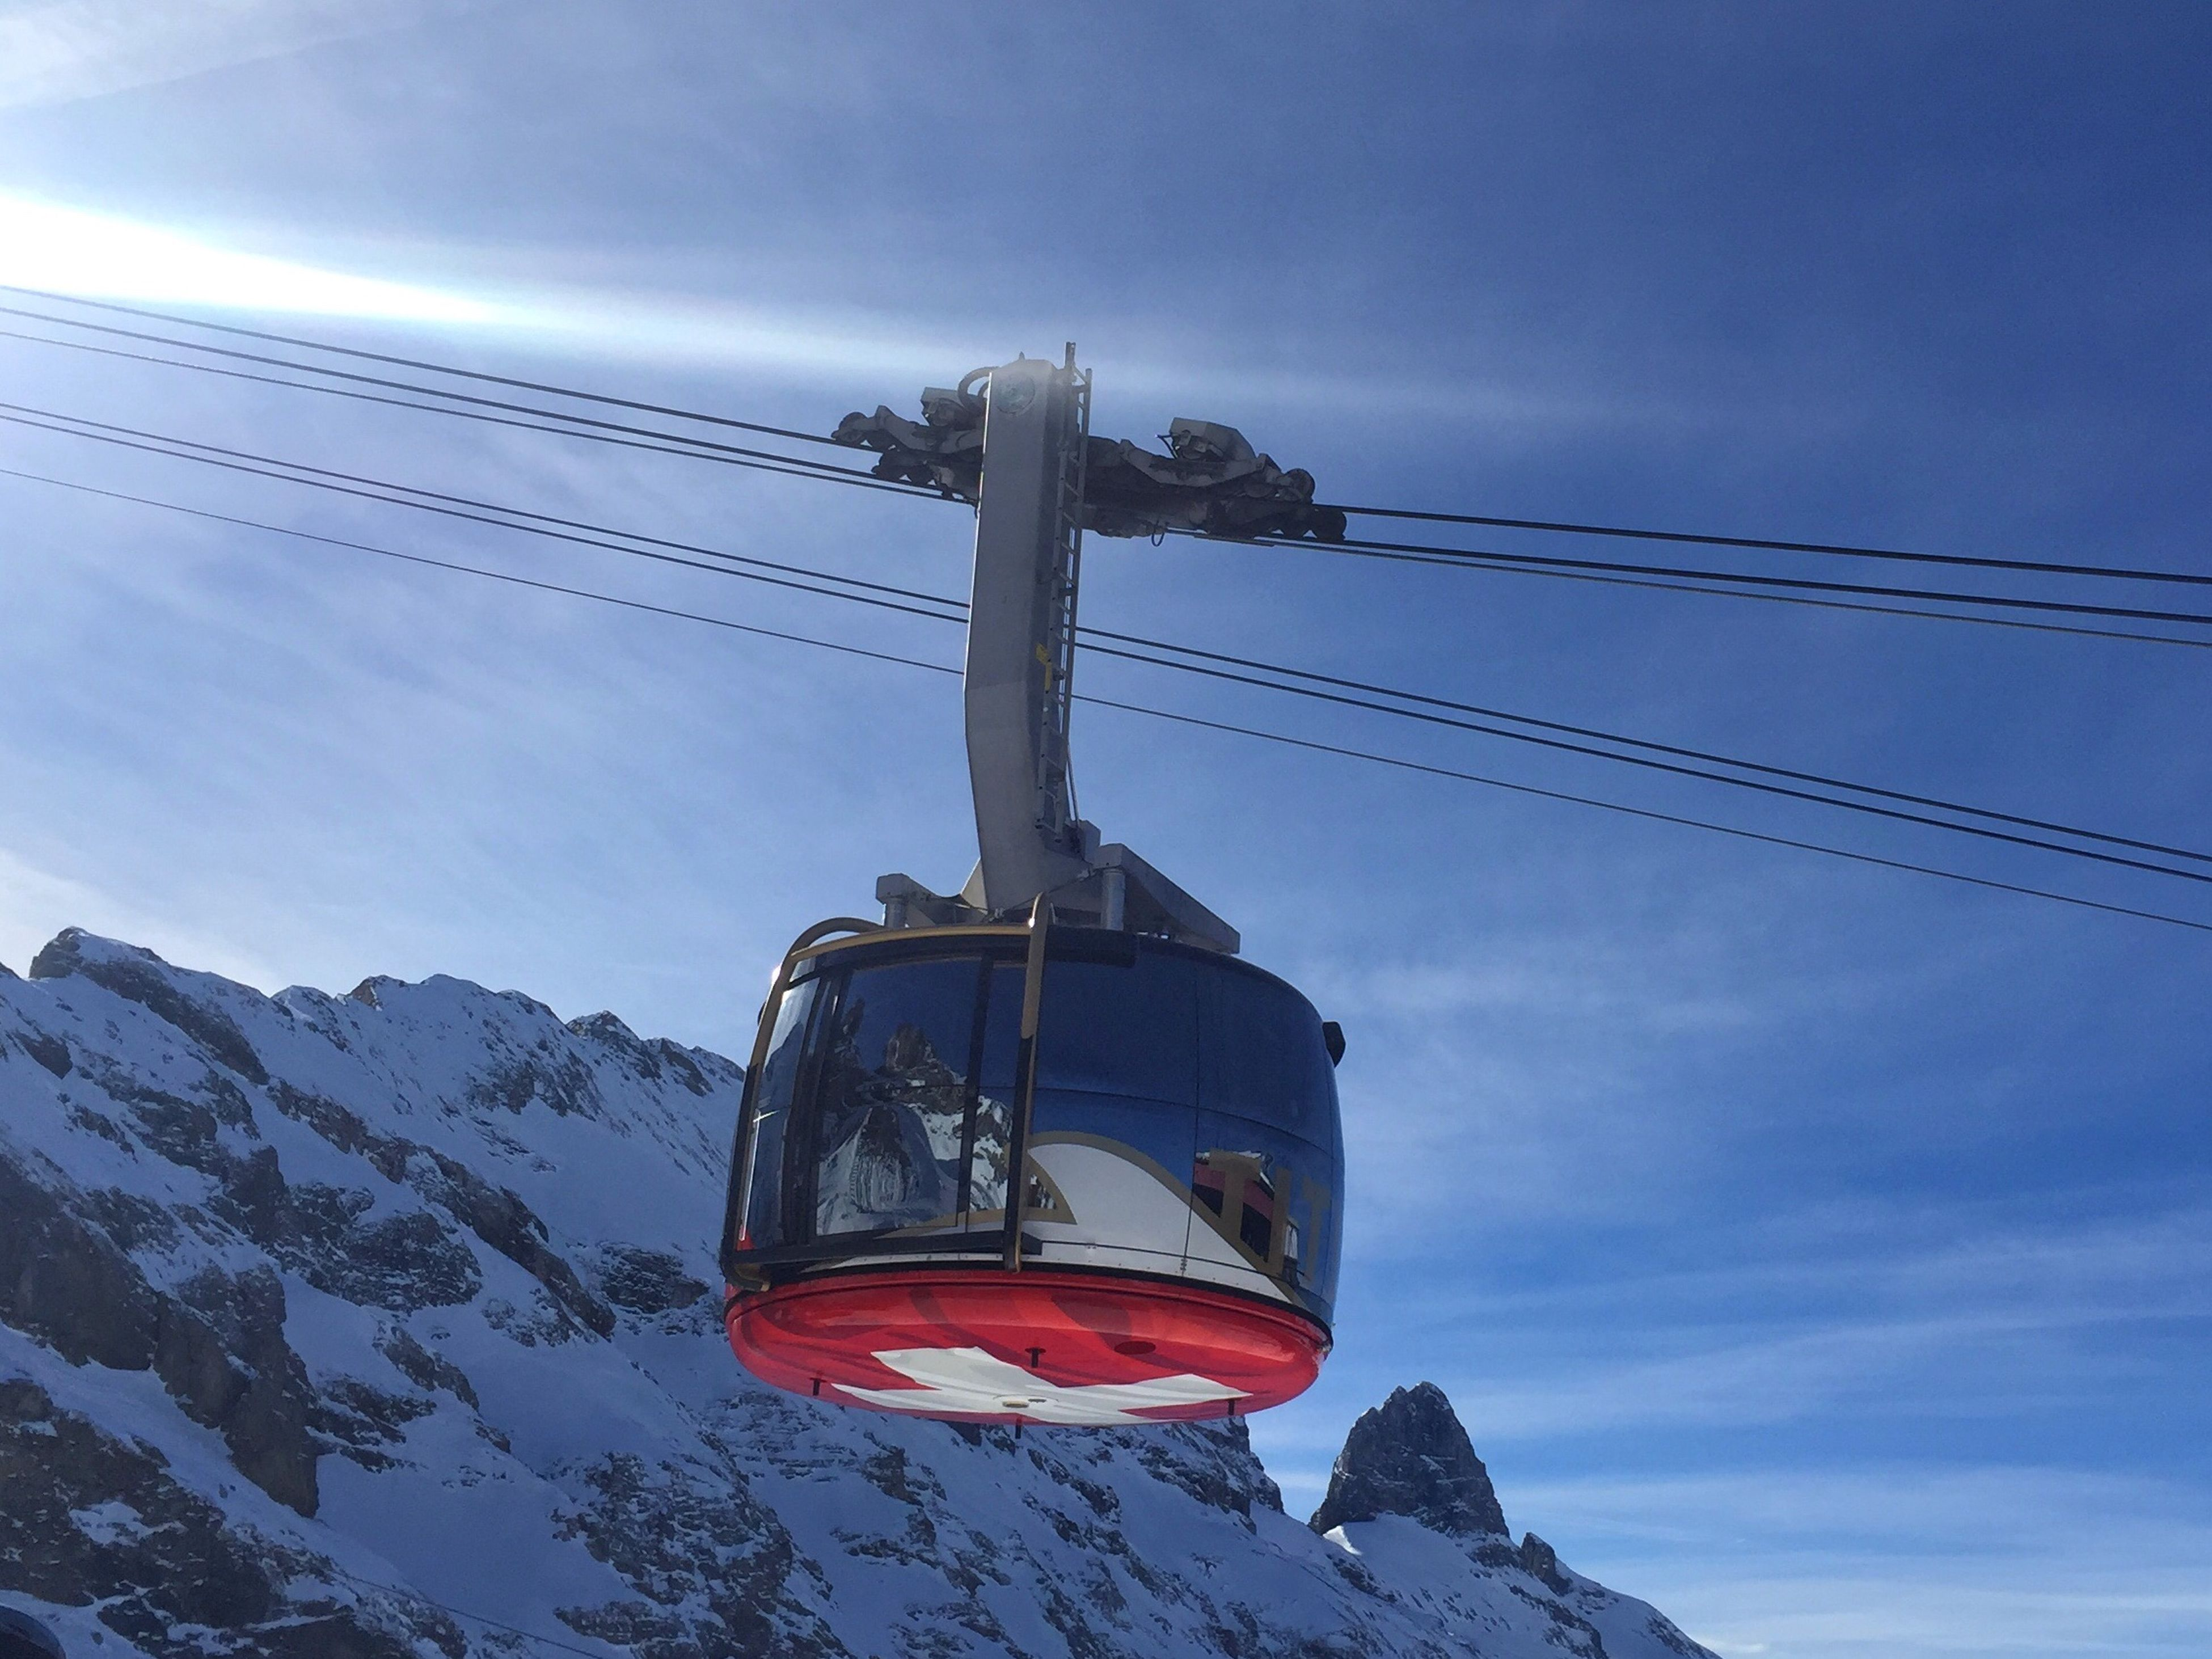 Titlis Rotair Cable Car Cable Car Blue Blue Sky Alps Alps Switzerland Reflection Mountain Mountains Engelberg Titlis Titlis,Switzerland Titlisrotair Rotair Rotating Cable Car Mountain Reflection Cable Swiss Flag Swiss Tourism Ski Holiday Winter Holiday Snow Sun